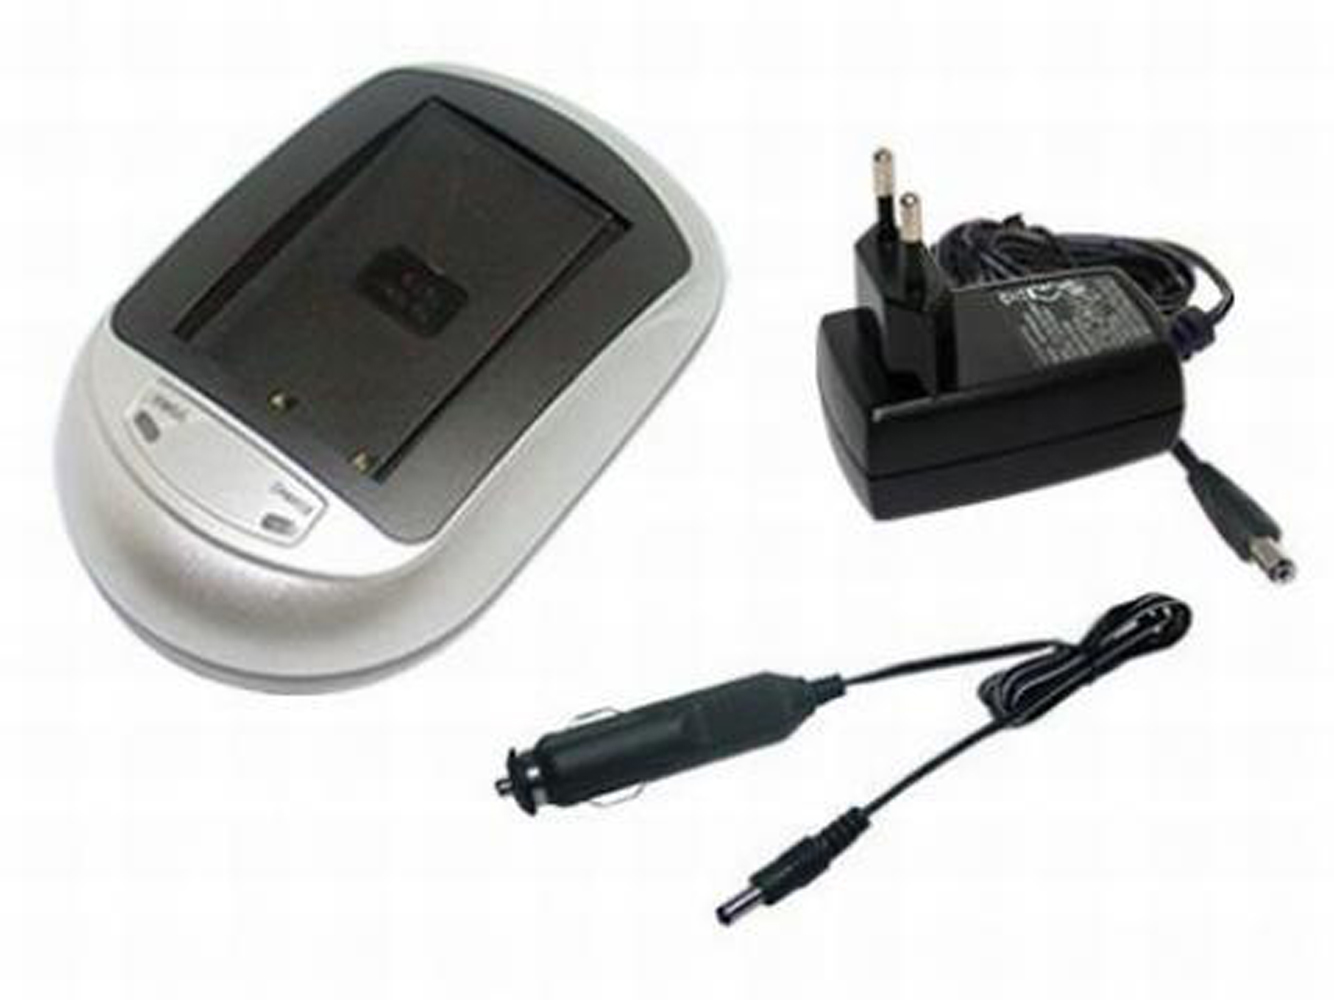 Battery Charger for NIKON EN-EL9, EN-EL9a, EN-EL9e